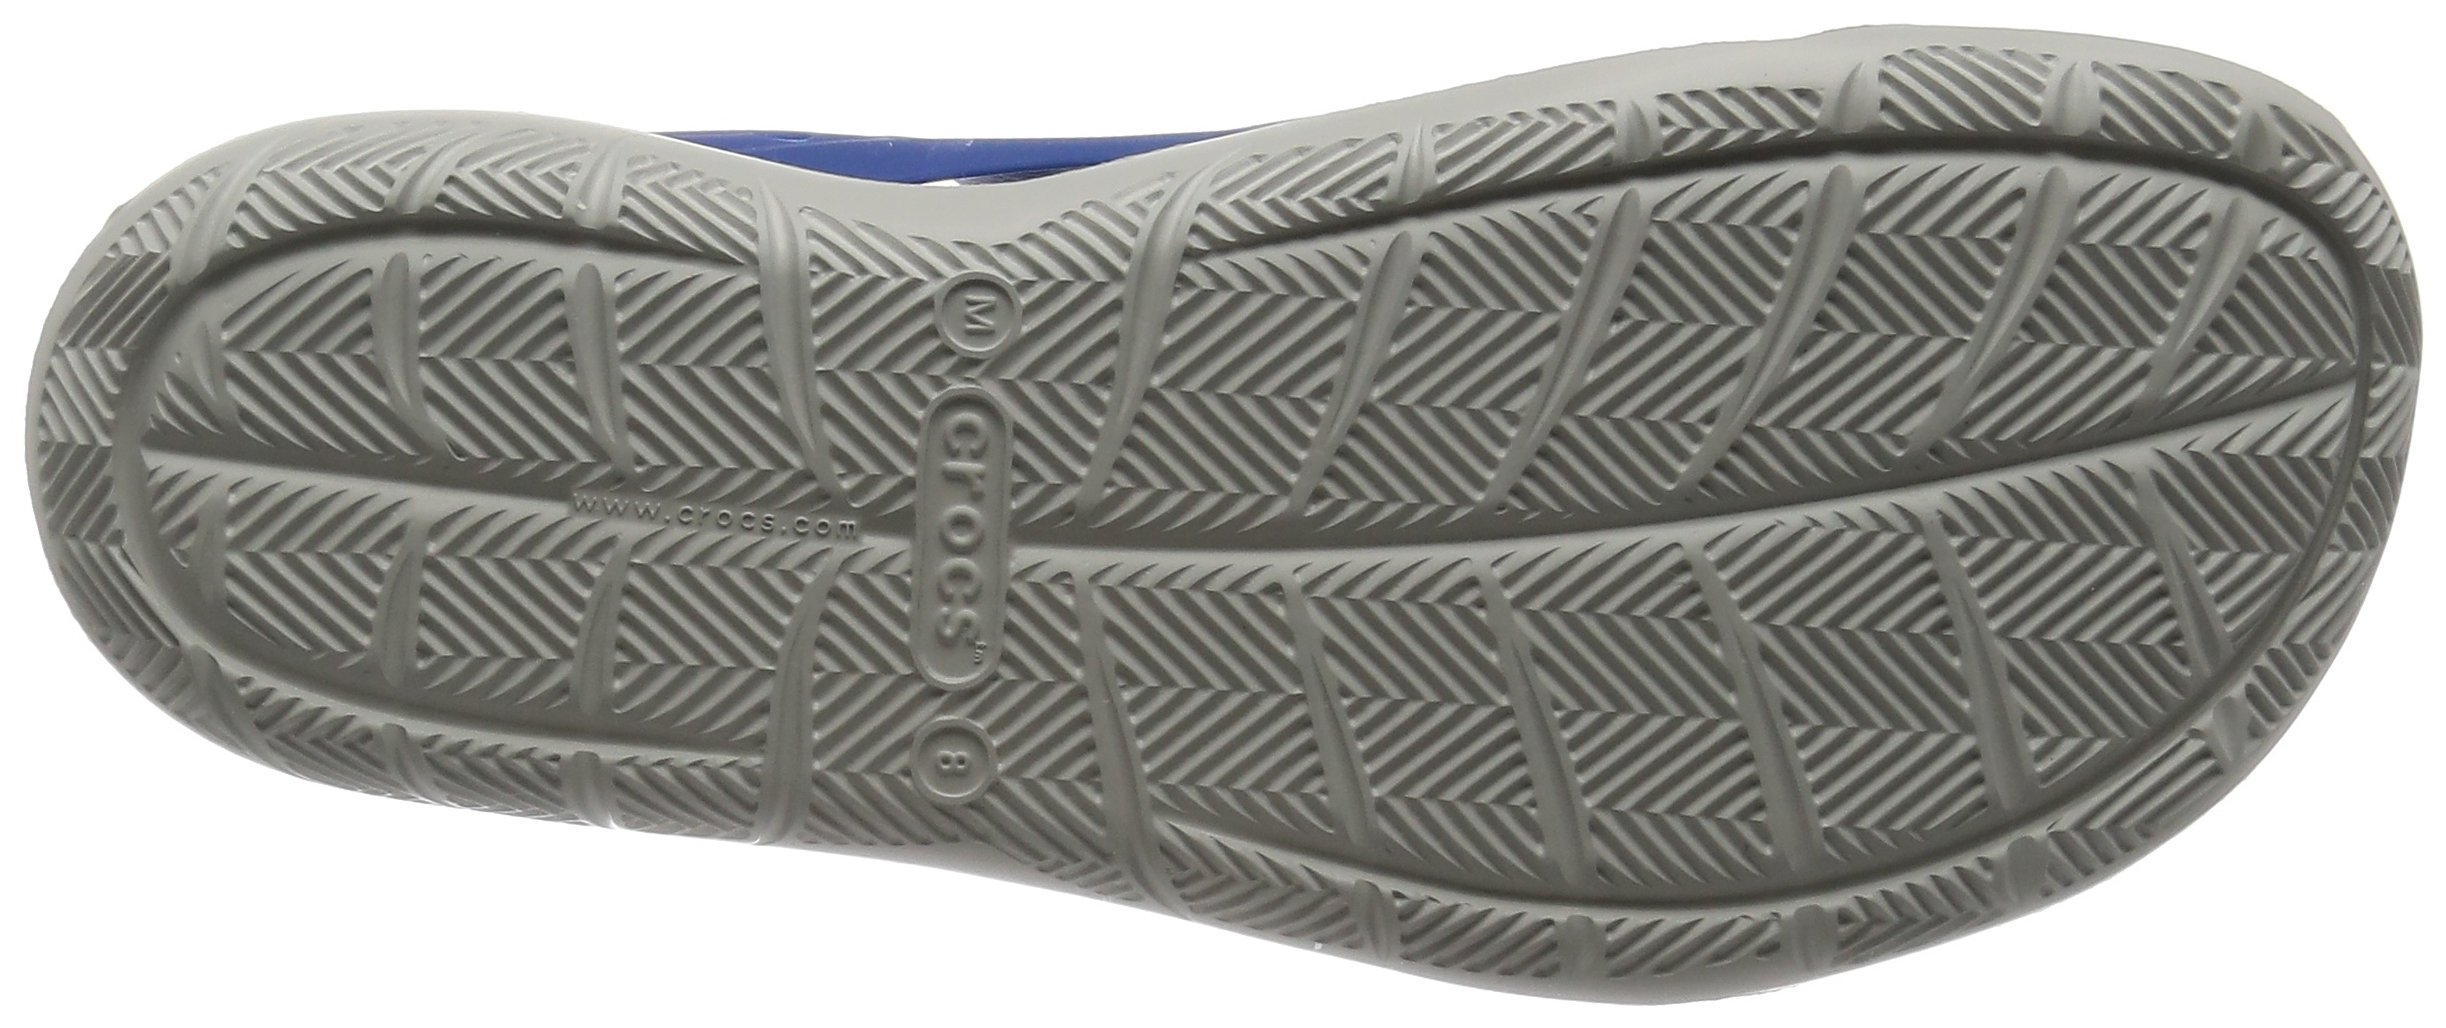 crocs Men's Swiftwater Wave M Flat,Blue Jean/Pearl White,4 M US by Crocs (Image #3)